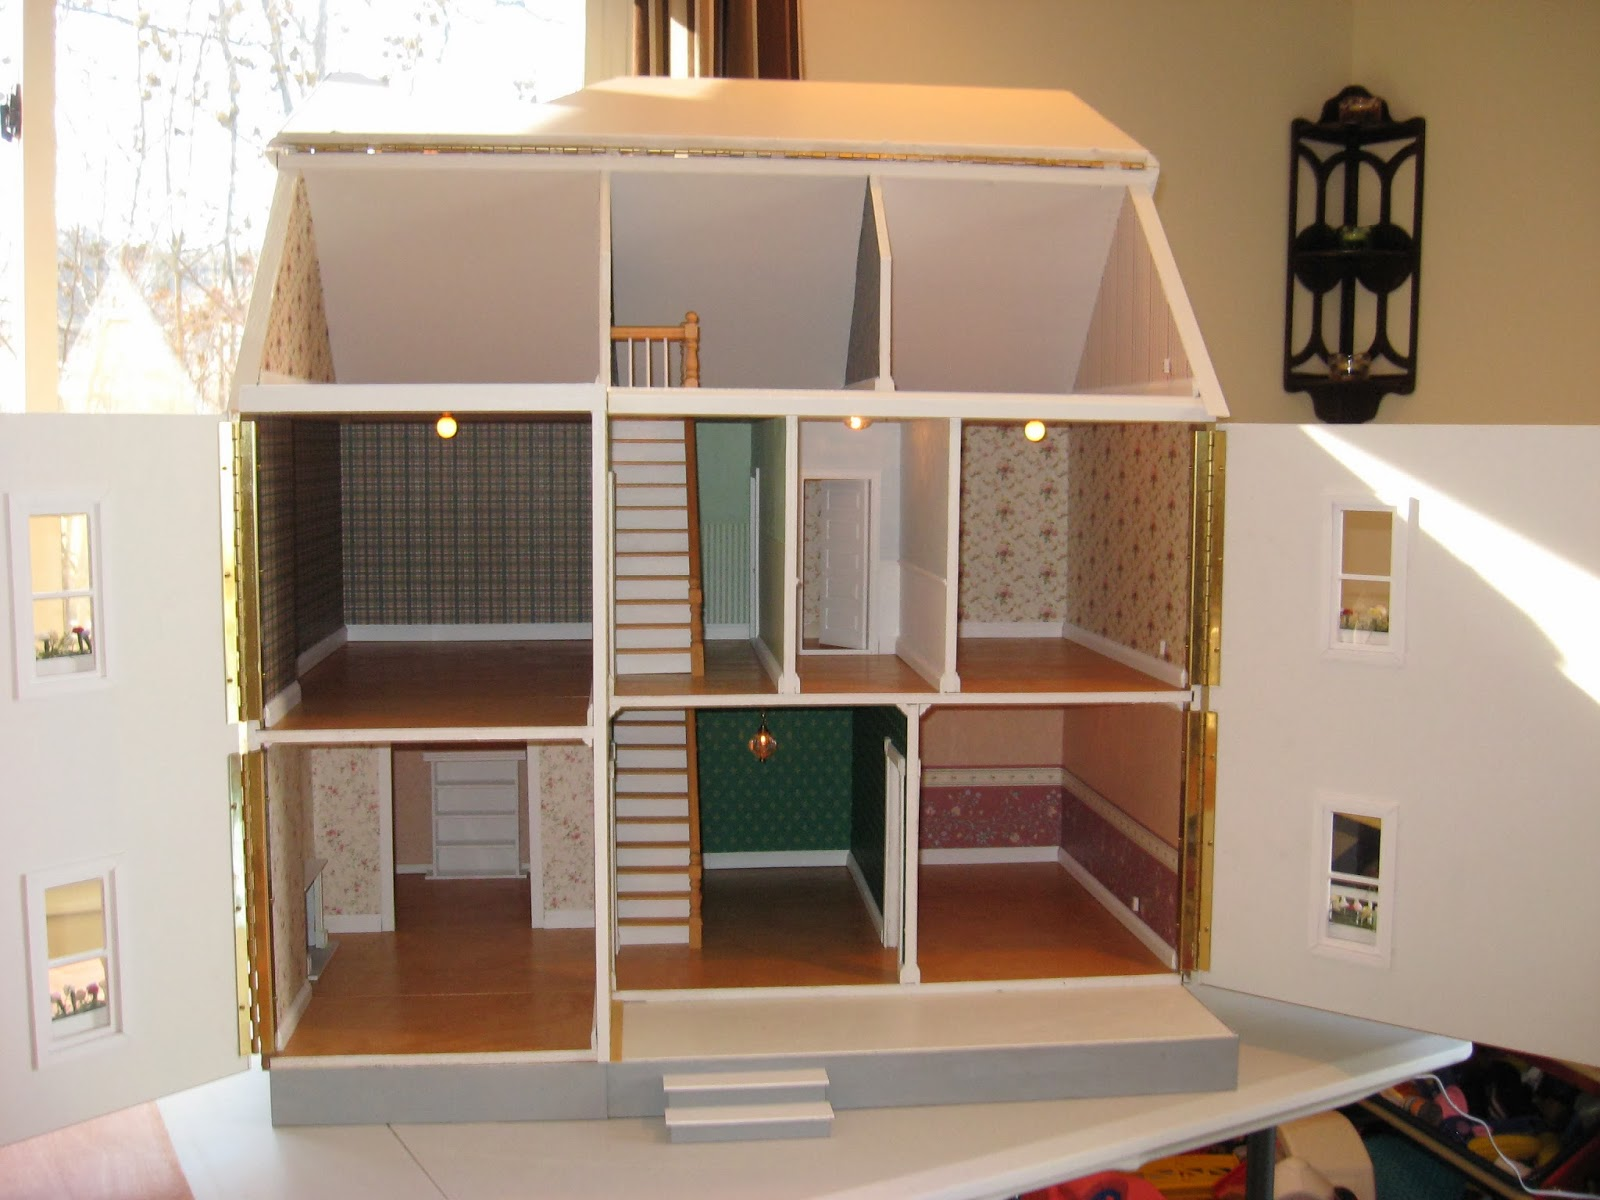 lighting for dollhouses. Run Through The Dollhouse With 6 Ceiling Fixtures Installed And 2 Outlets To Plug In Additional Lamps. (lamps Not Included). Total Package $450.00 Lighting For Dollhouses R